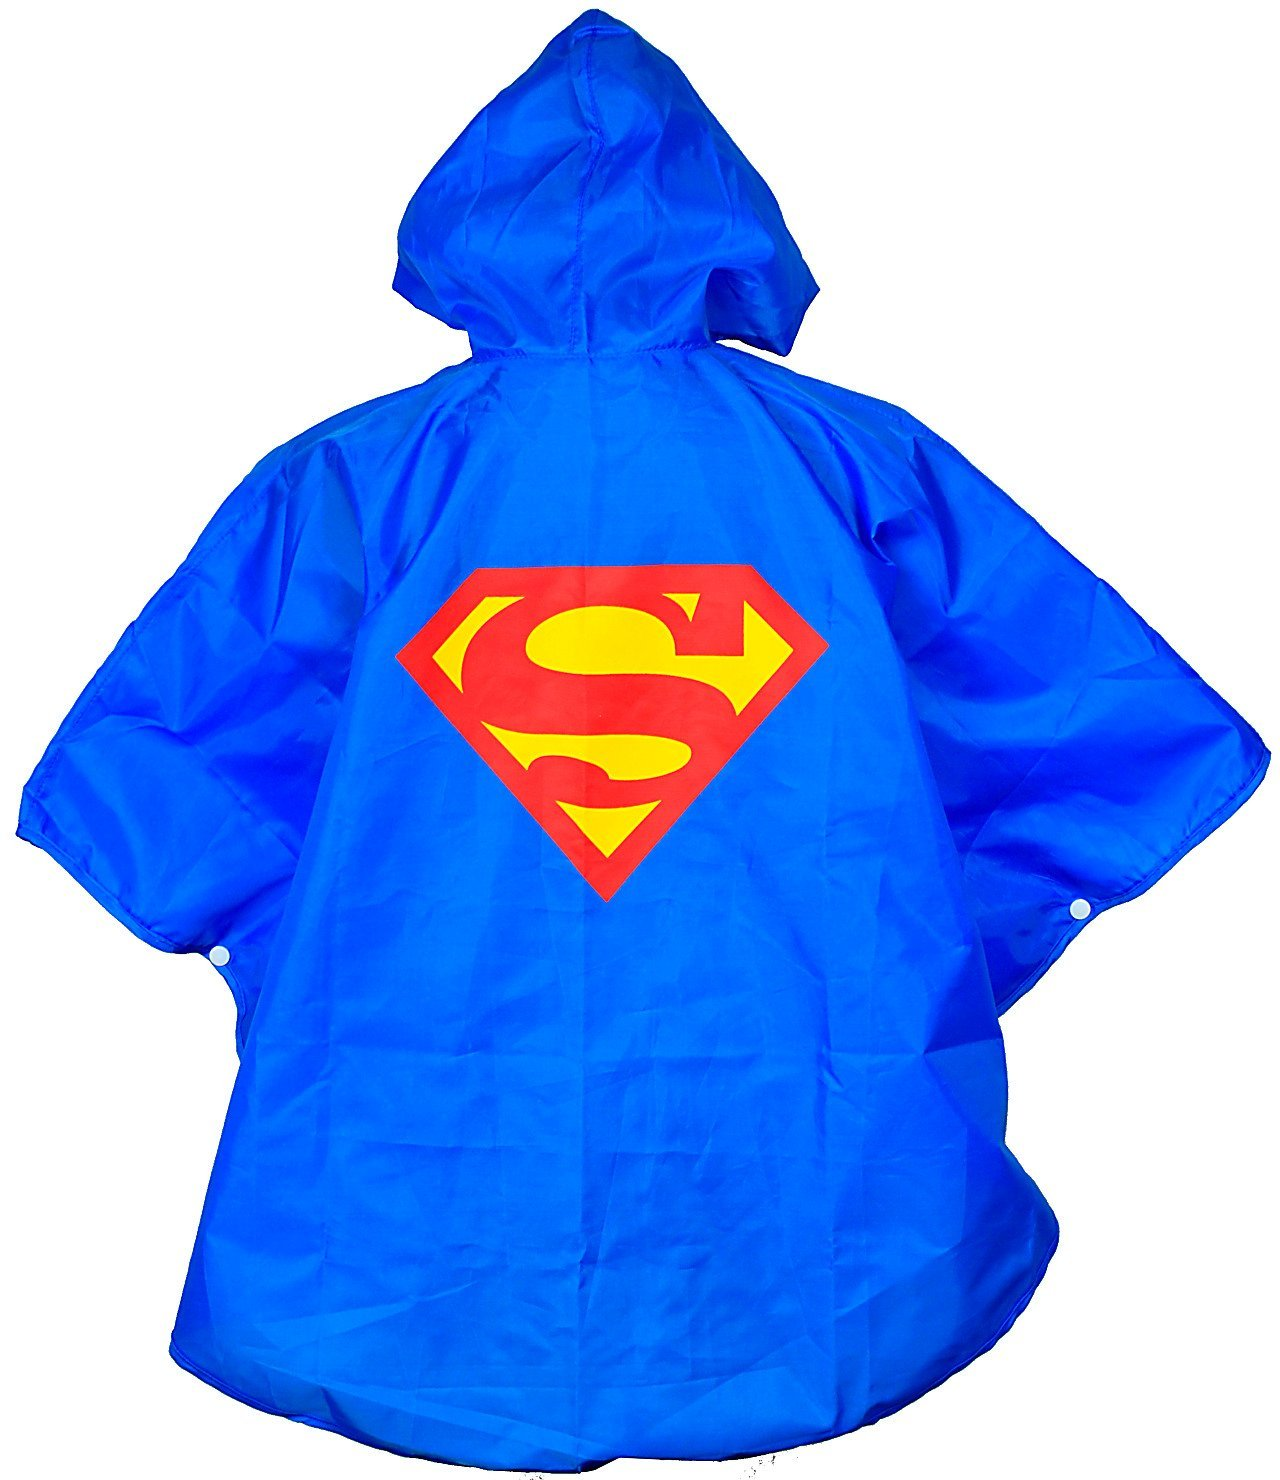 Kids Superman Poncho Raincoat With FREE Super Hero Bag